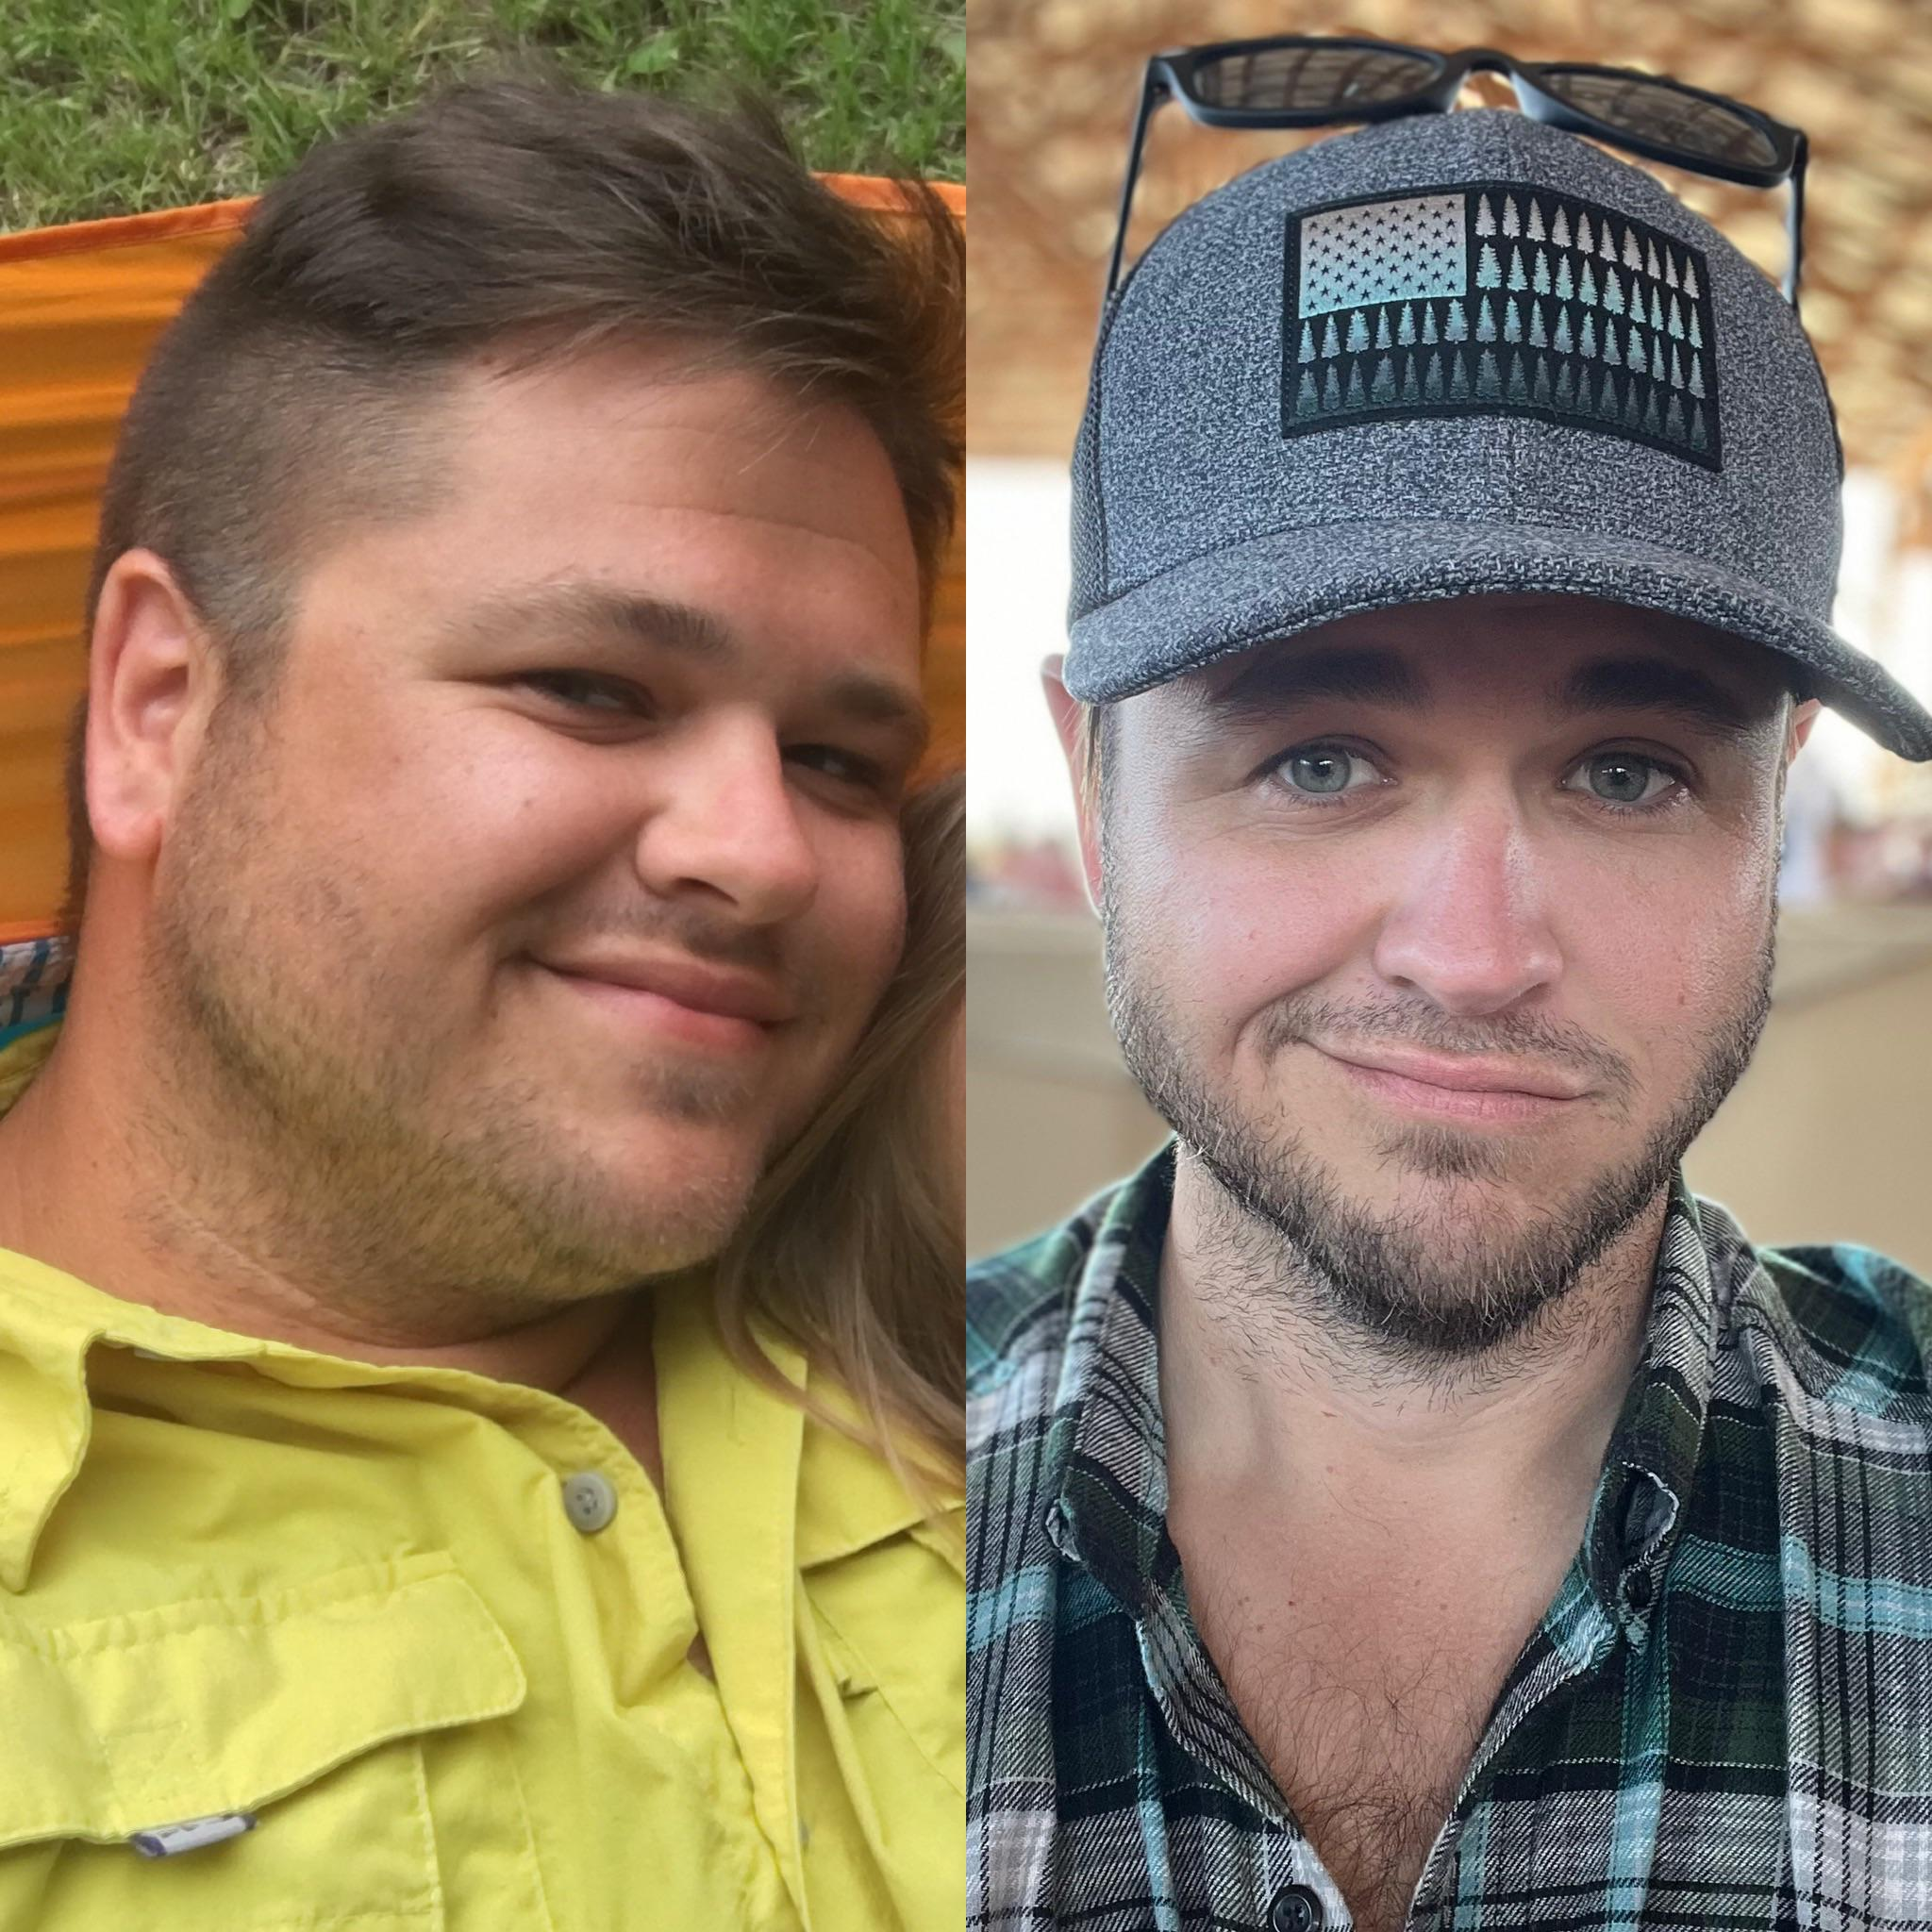 5 foot 9 Male Before and After 70 lbs Weight Loss 265 lbs to 195 lbs